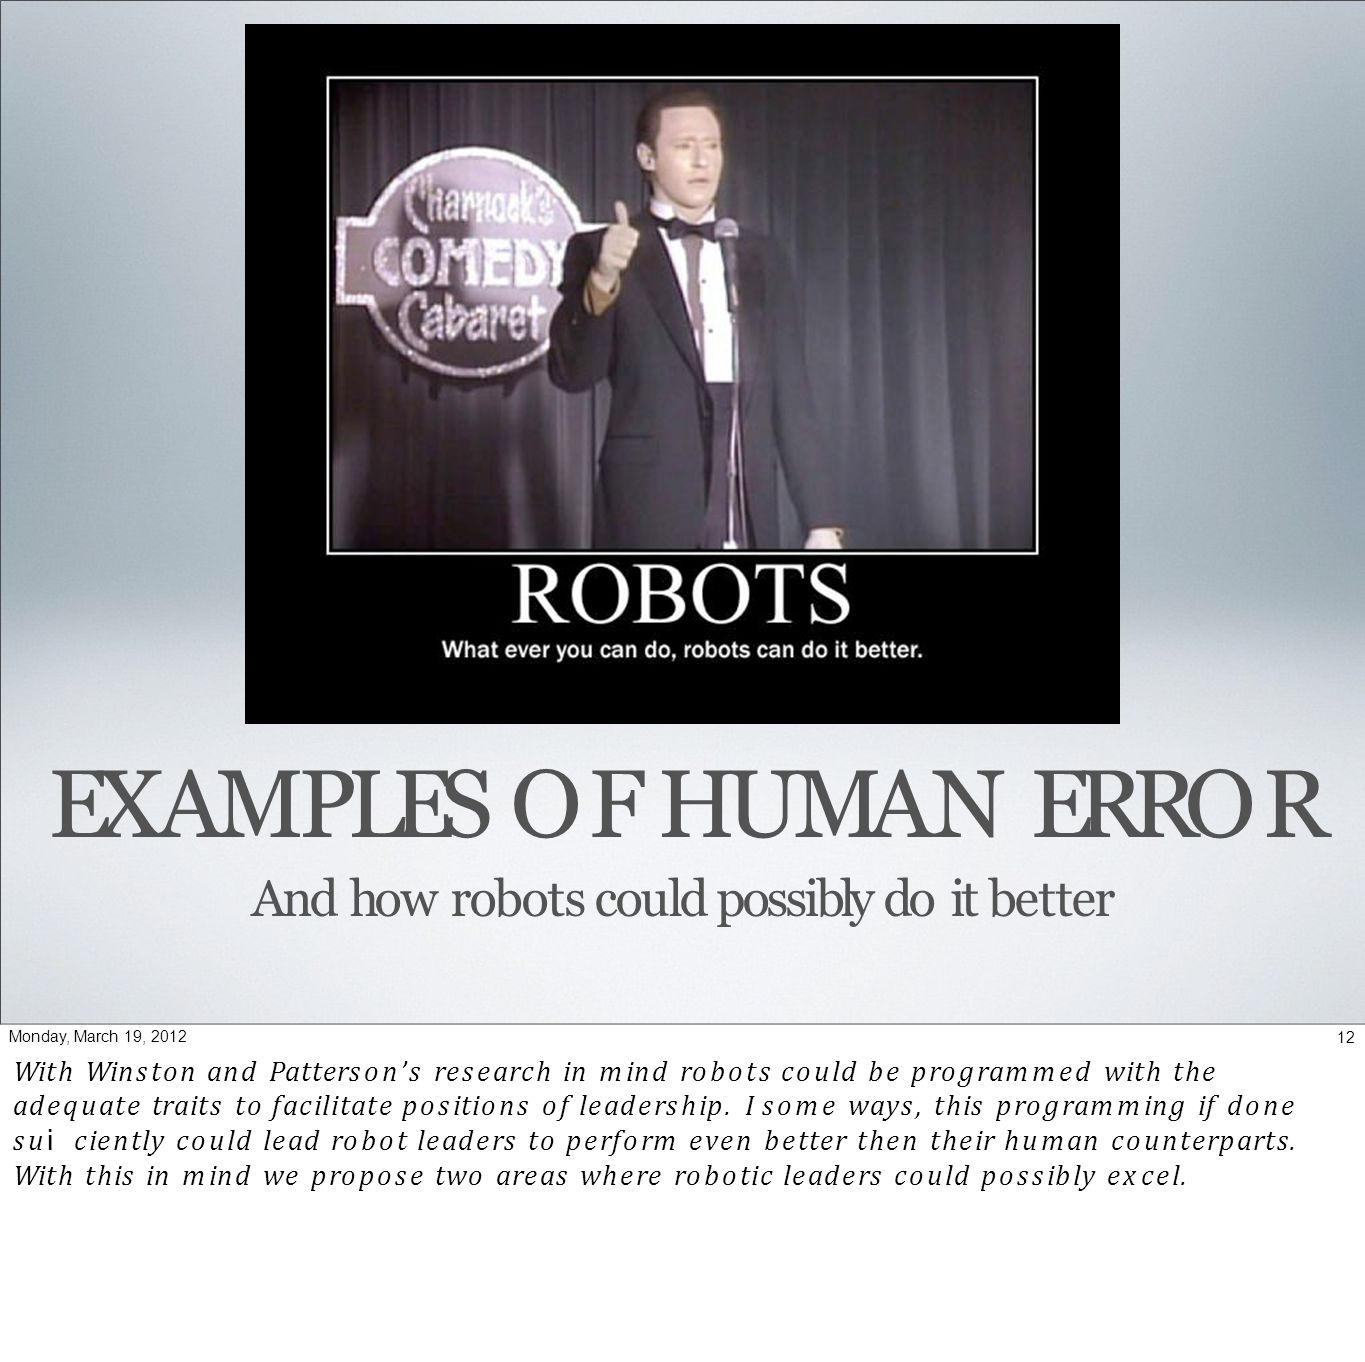 EXAMPLES OF HUMAN ERROR And how robots could possibly do it better 12Monday, March 19, 2012 With Winston and Patterson's research in mind robots could be programmed with the adequate traits to facilitate positions of leadership.